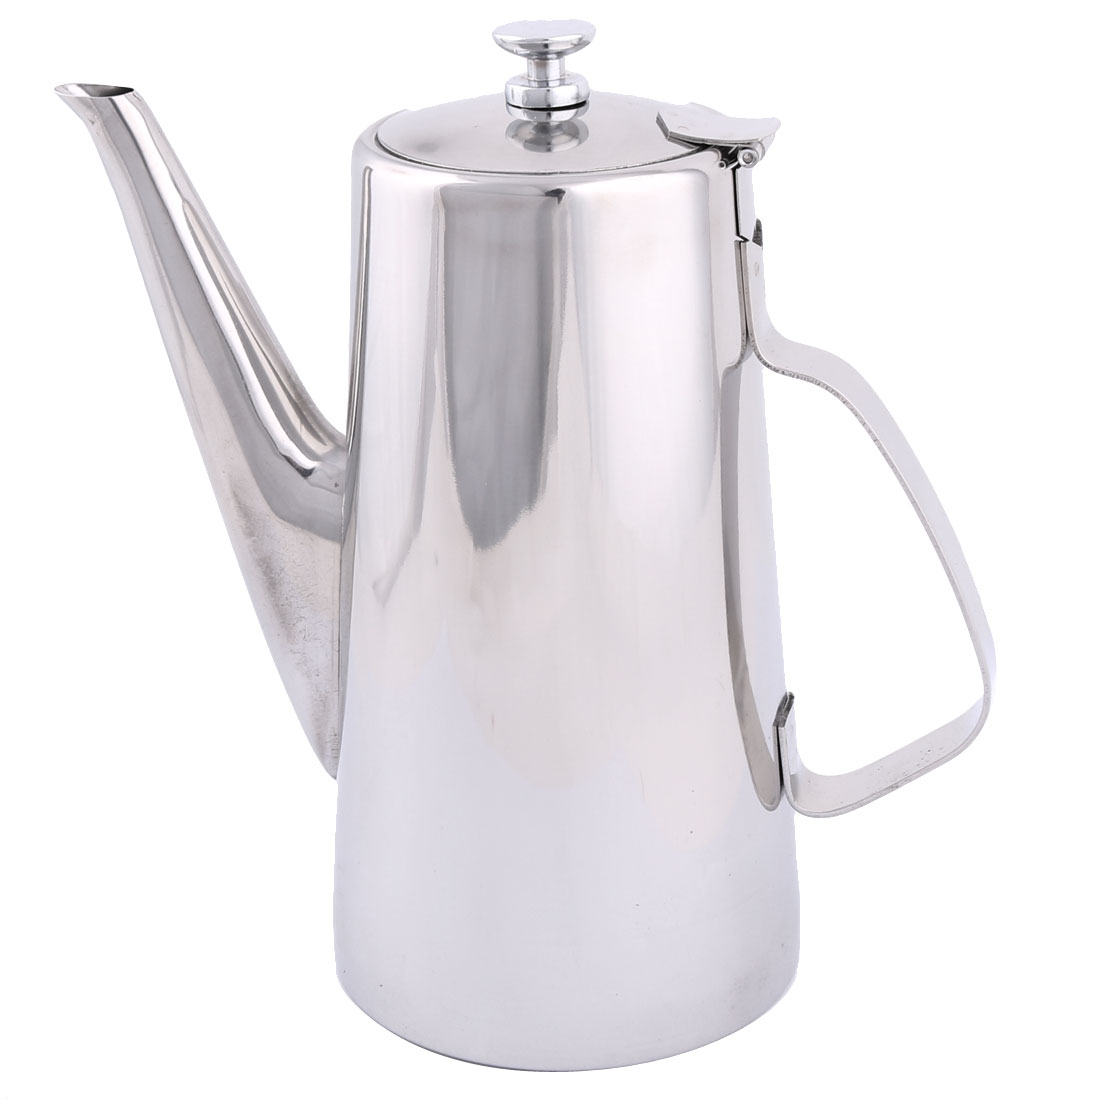 Household Stainless Steel Coffee Tea Water Pot Teapot Kettle Silver Tone 2L